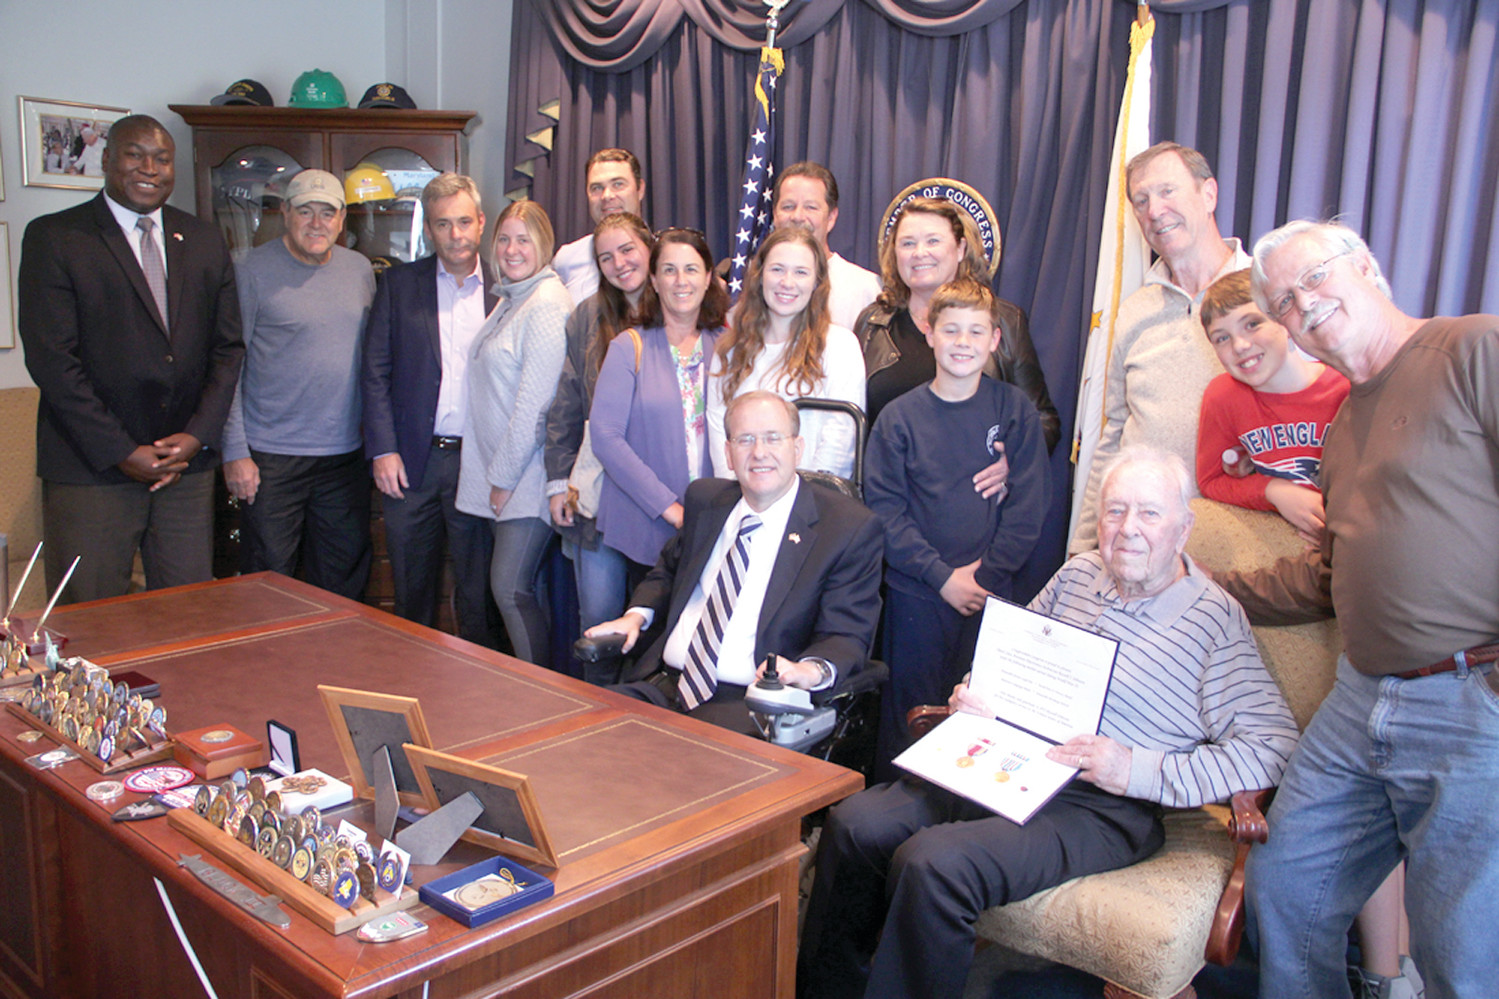 CELEBRATING HIS SERVICE: Congressman Jim Langevin presented WWII medals and awards to Russell Johnson at his office Tuesday. They were joined by members of Johnson's extended family and Rhode Island Director of Veterans Affairs Kasim Yarn at far left.